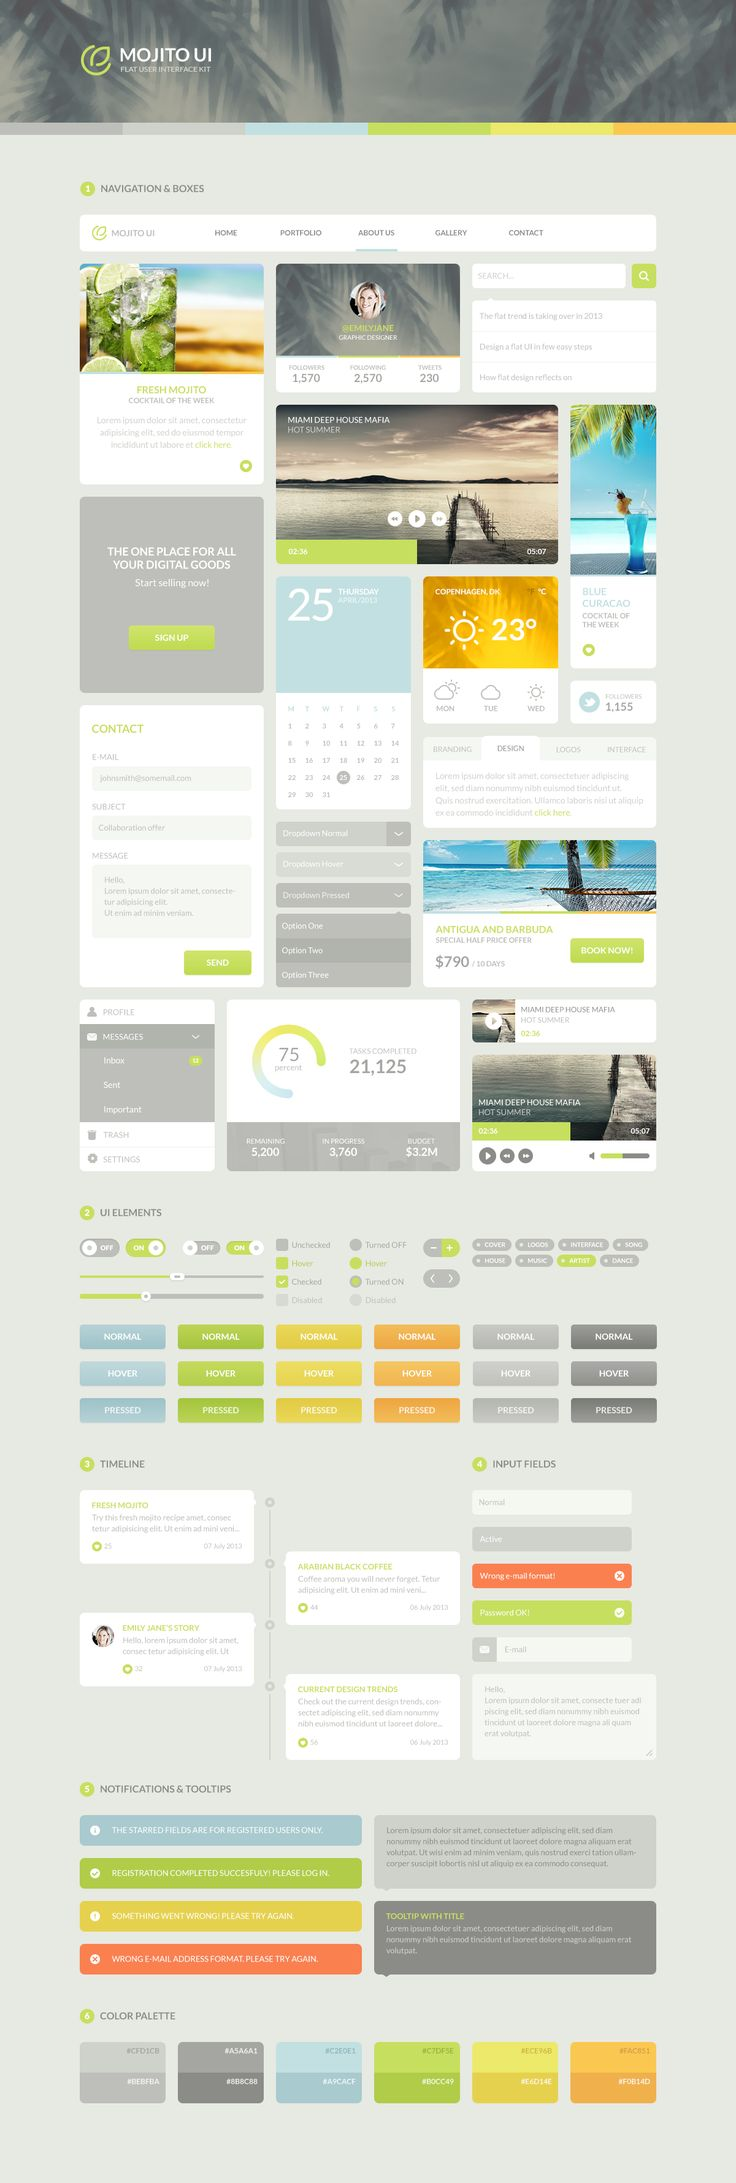 Mojito UI, flat user interface kit by Vlade Dimovski